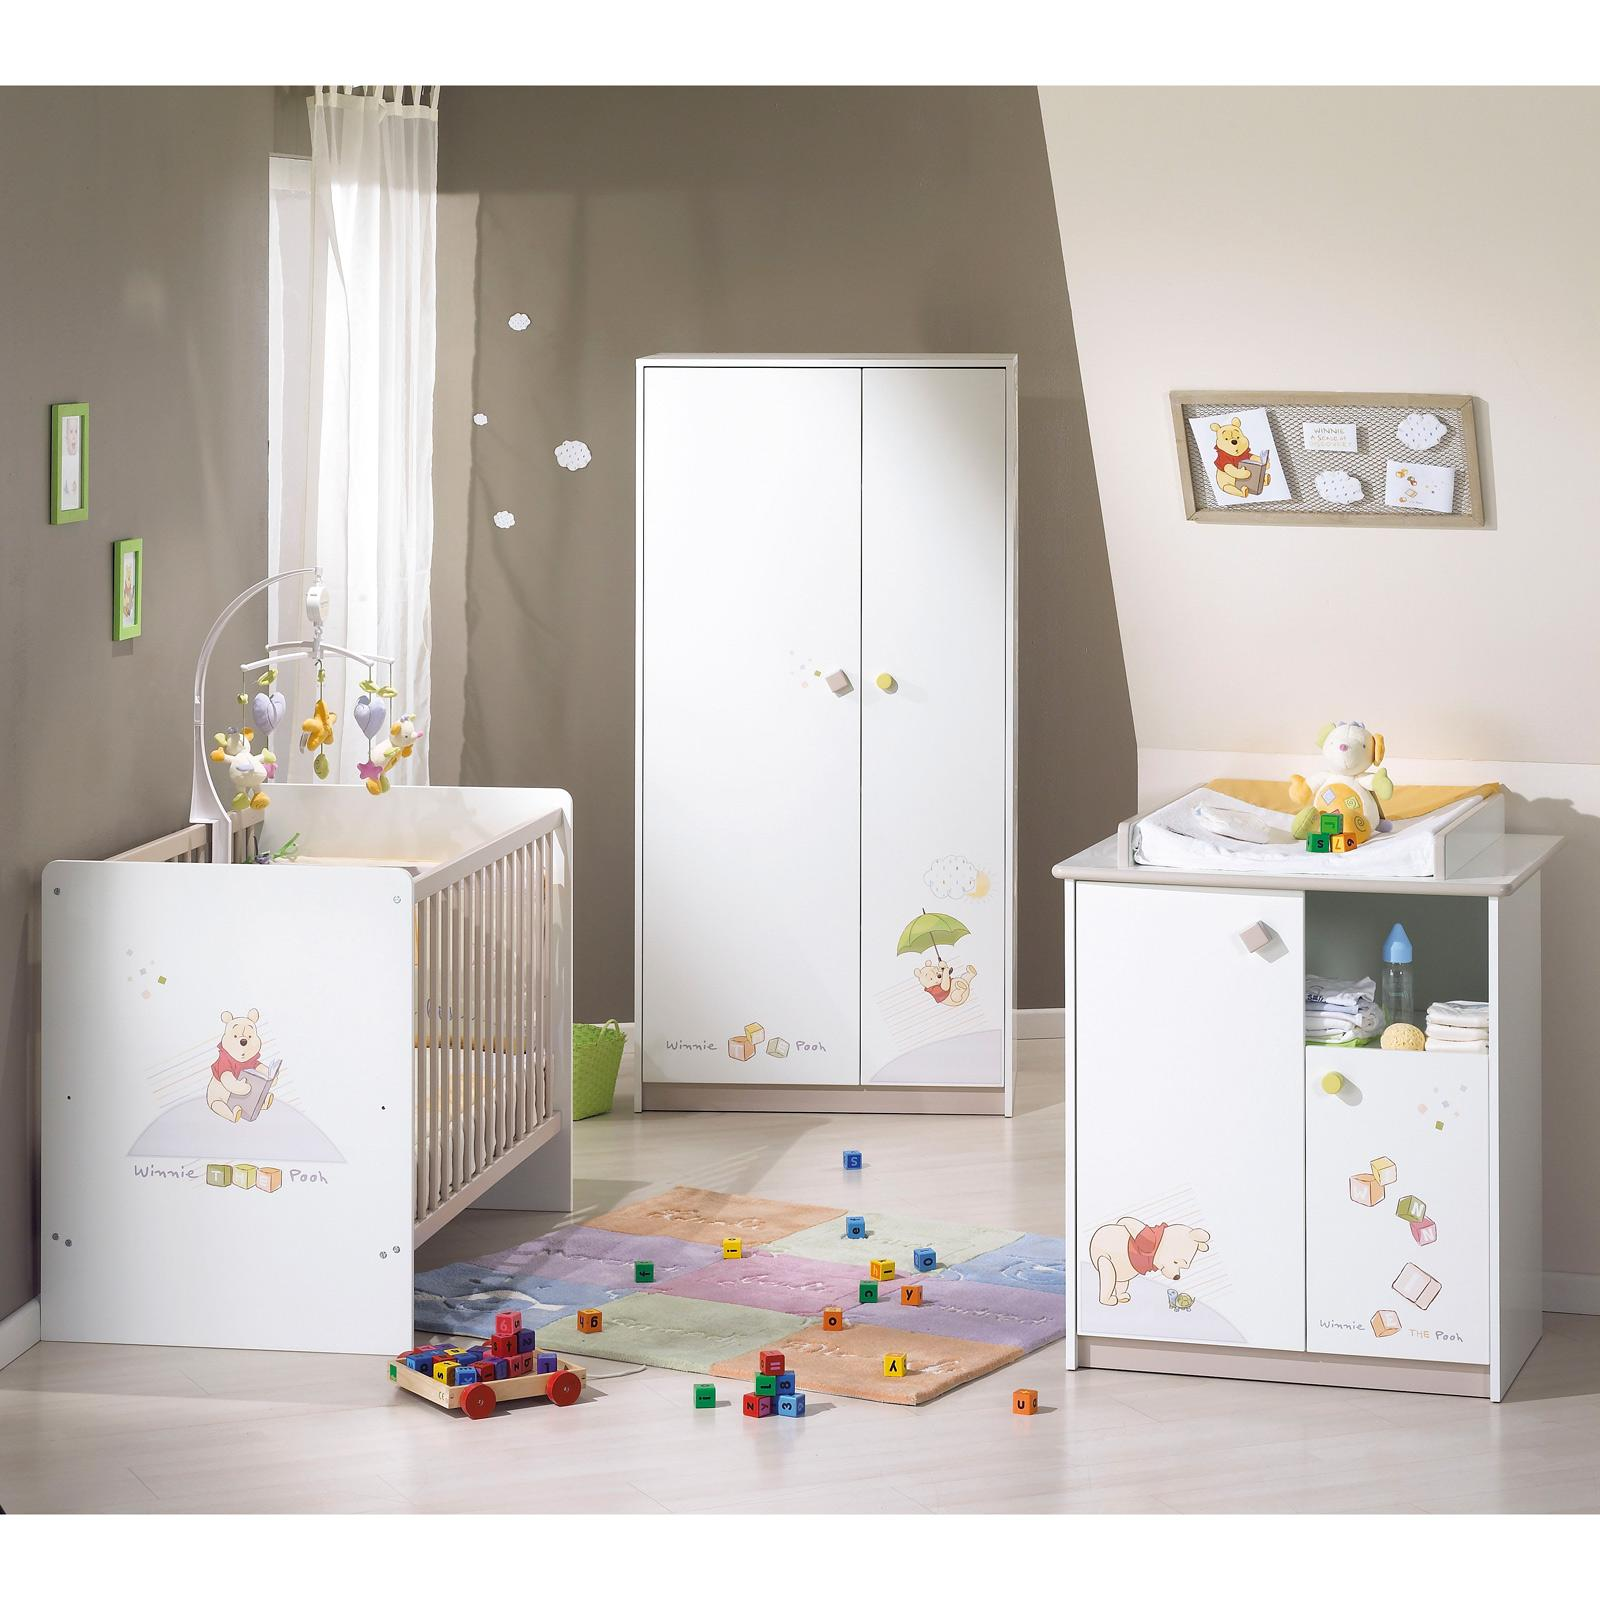 Decoration chambre winnie l ourson pas cher - Chambre complete adulte alinea ...